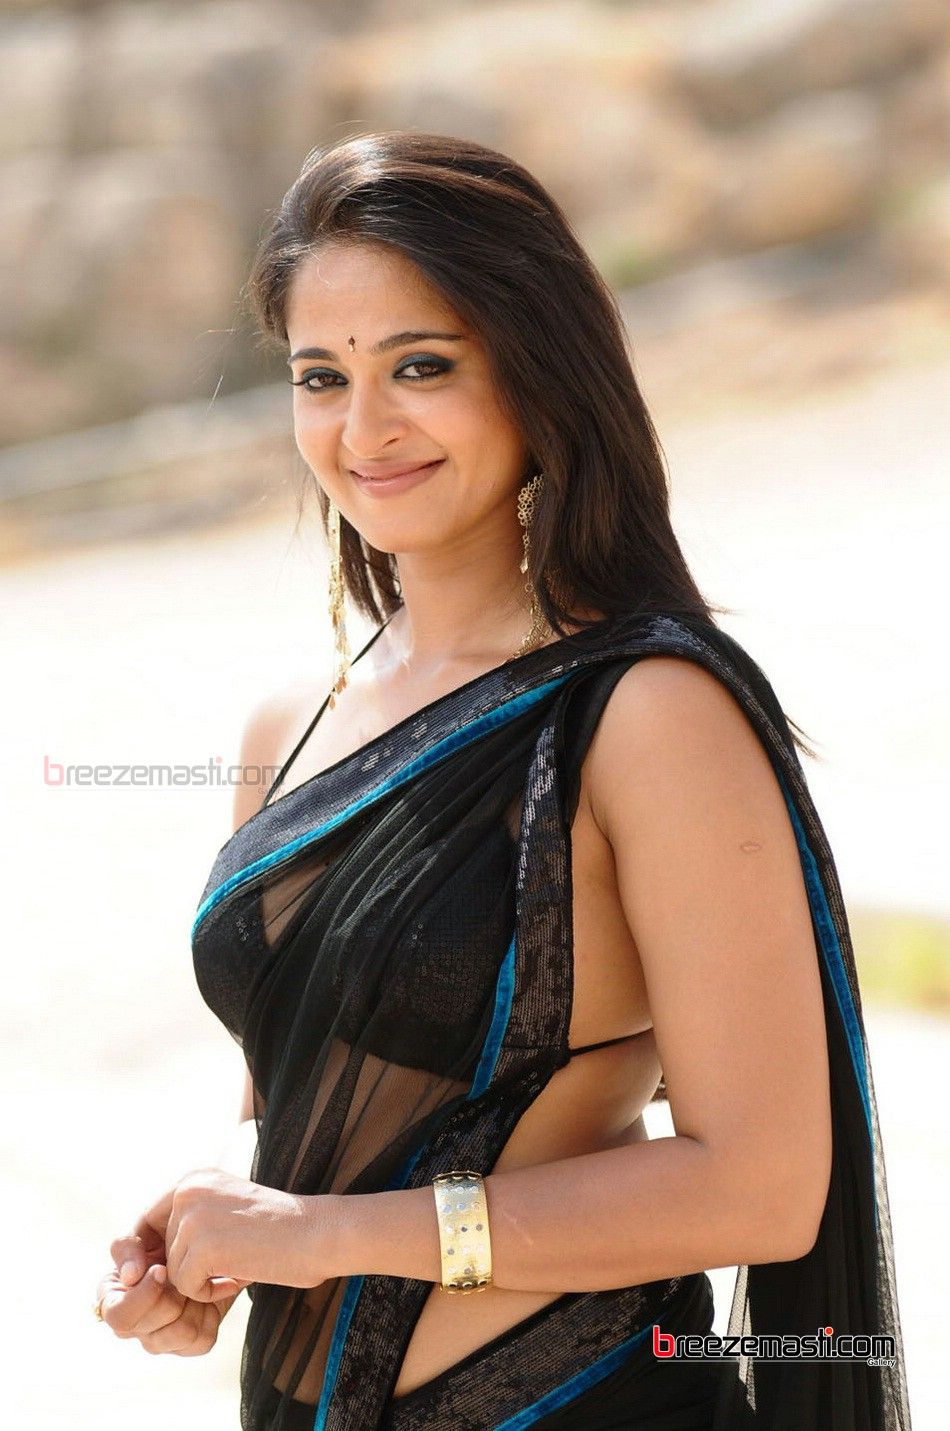 anushka shetty imageanushka shetty 2016, anushka shetty wiki, anushka shetty image, anushka shetty filmography, anushka shetty husband photos, anushka shetty hamara photos, anushka shetty wikipedia, anushka shetty film, anushka shetty and sonakshi sinha, anushka shetty hairstyle name, anushka shetty prabhas